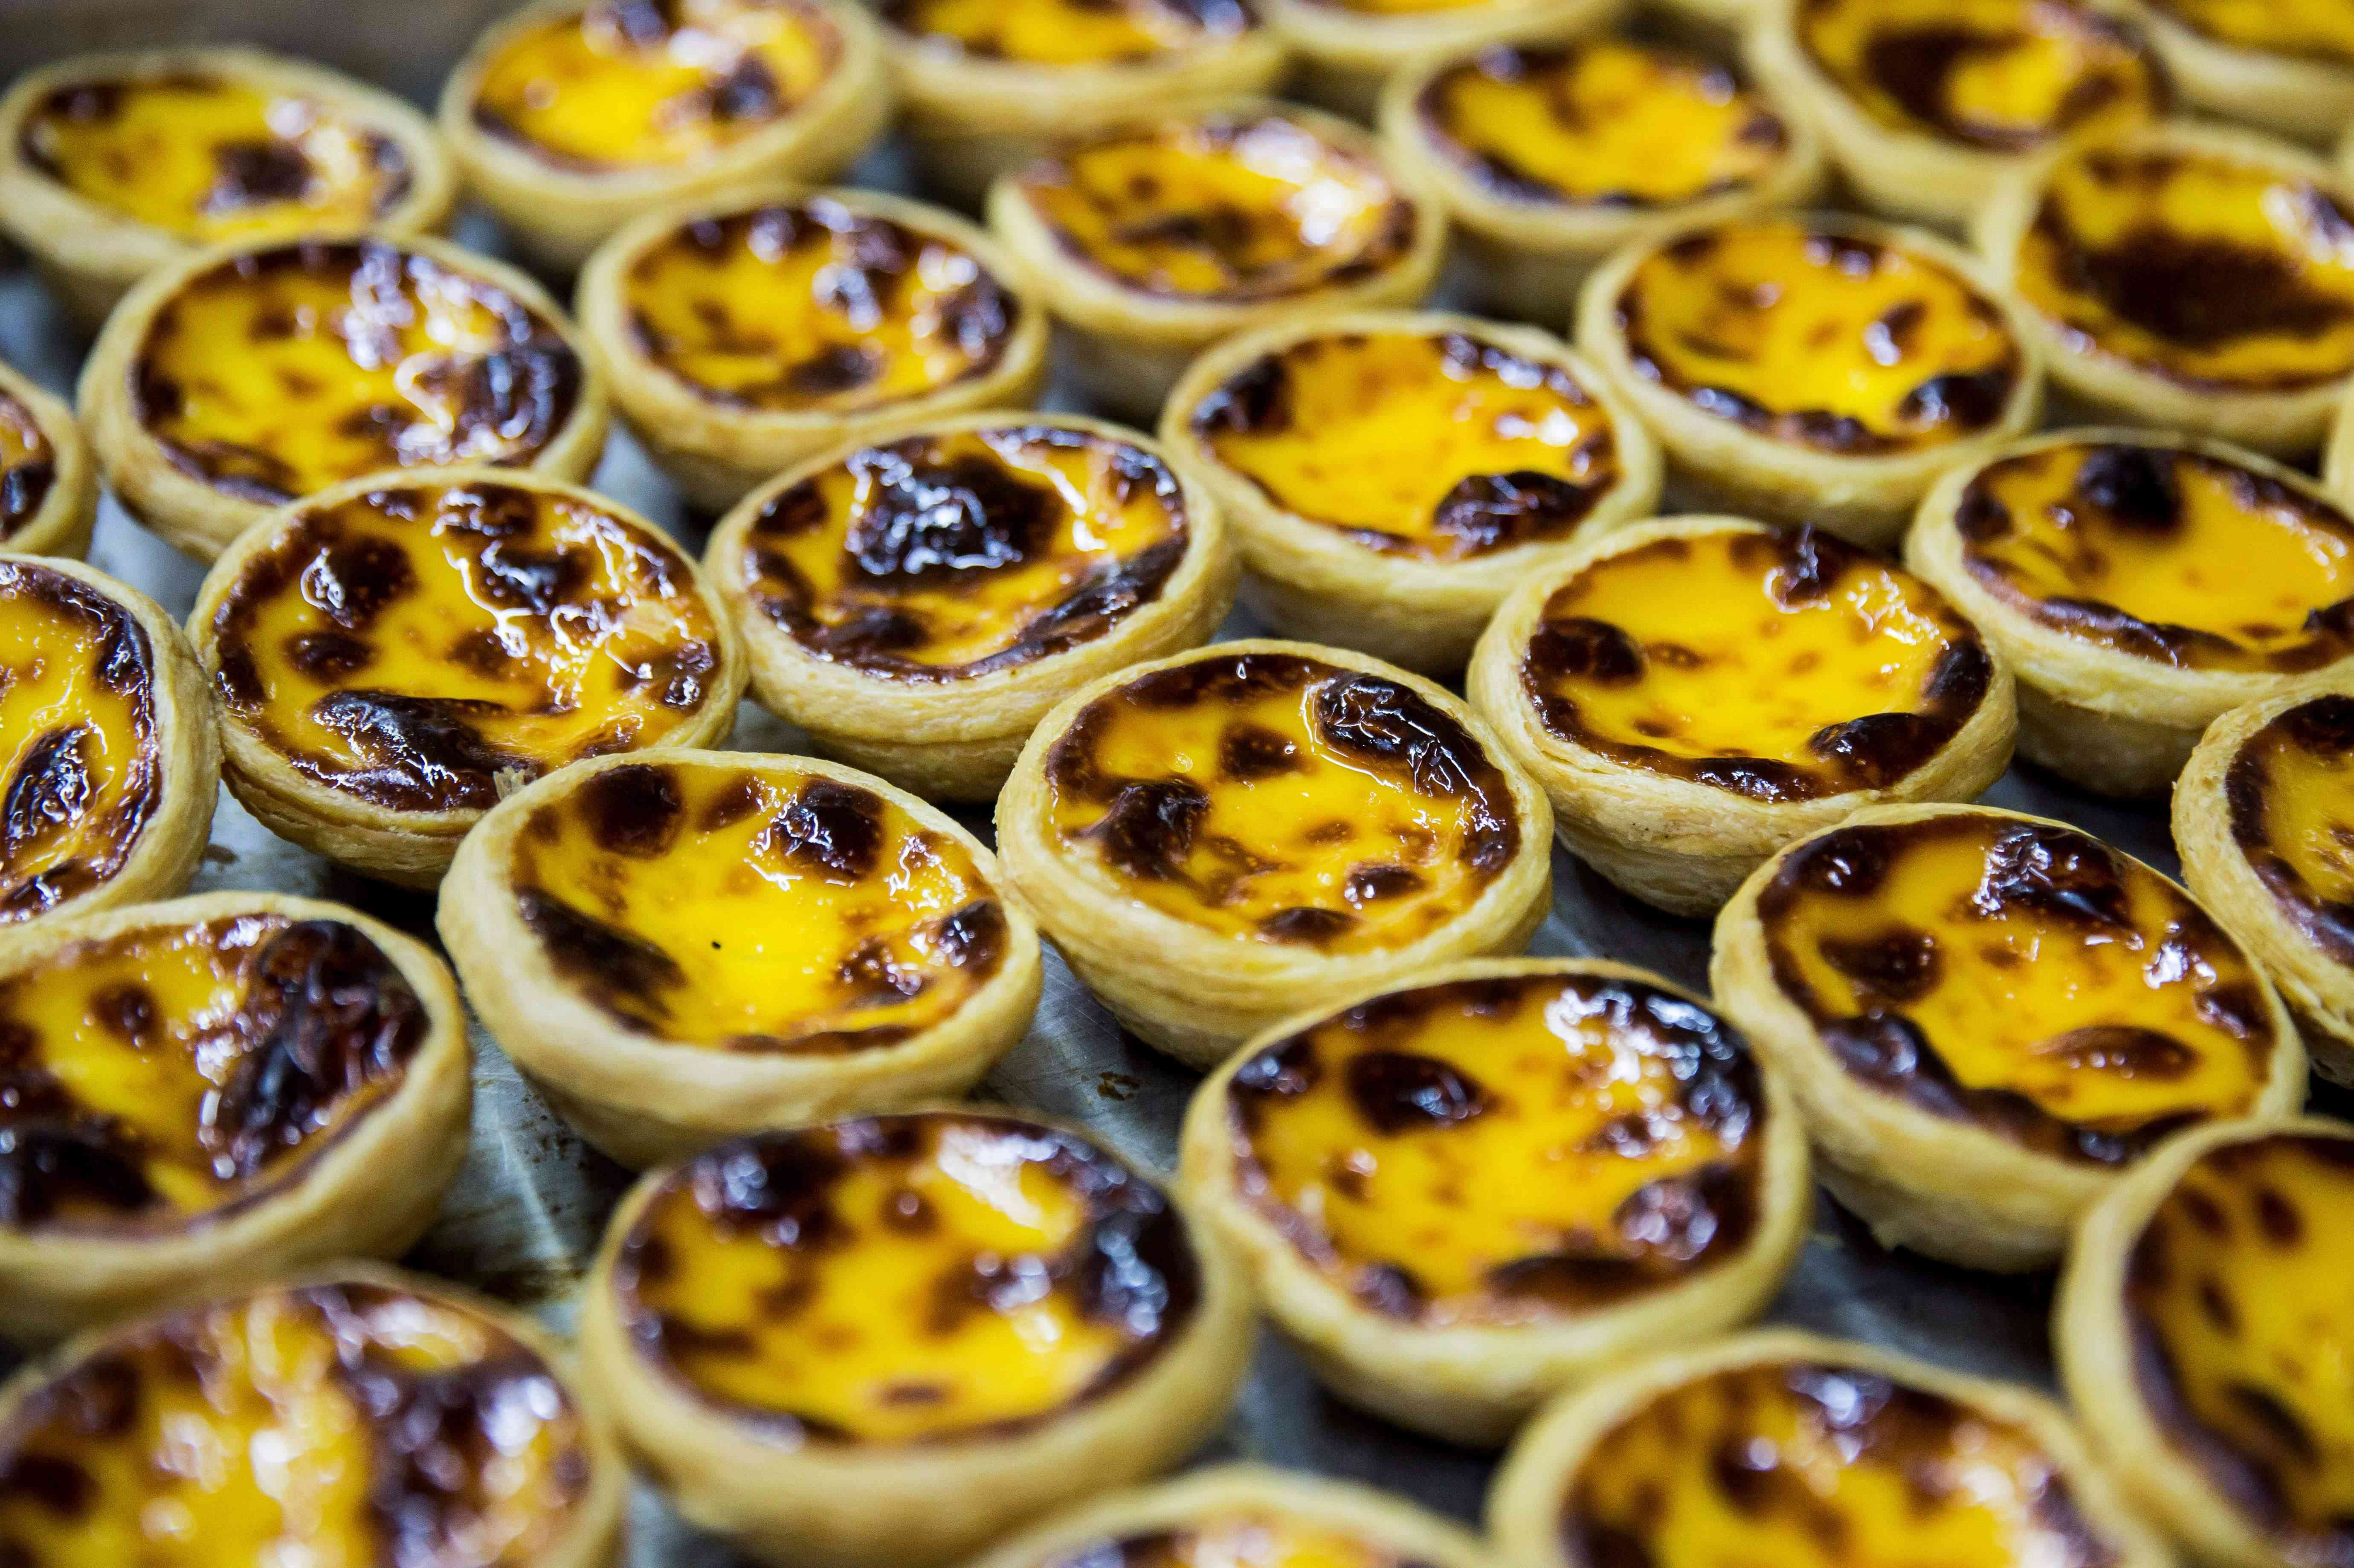 freshly baked egg tarts at Lord Stow's bakery in Macau